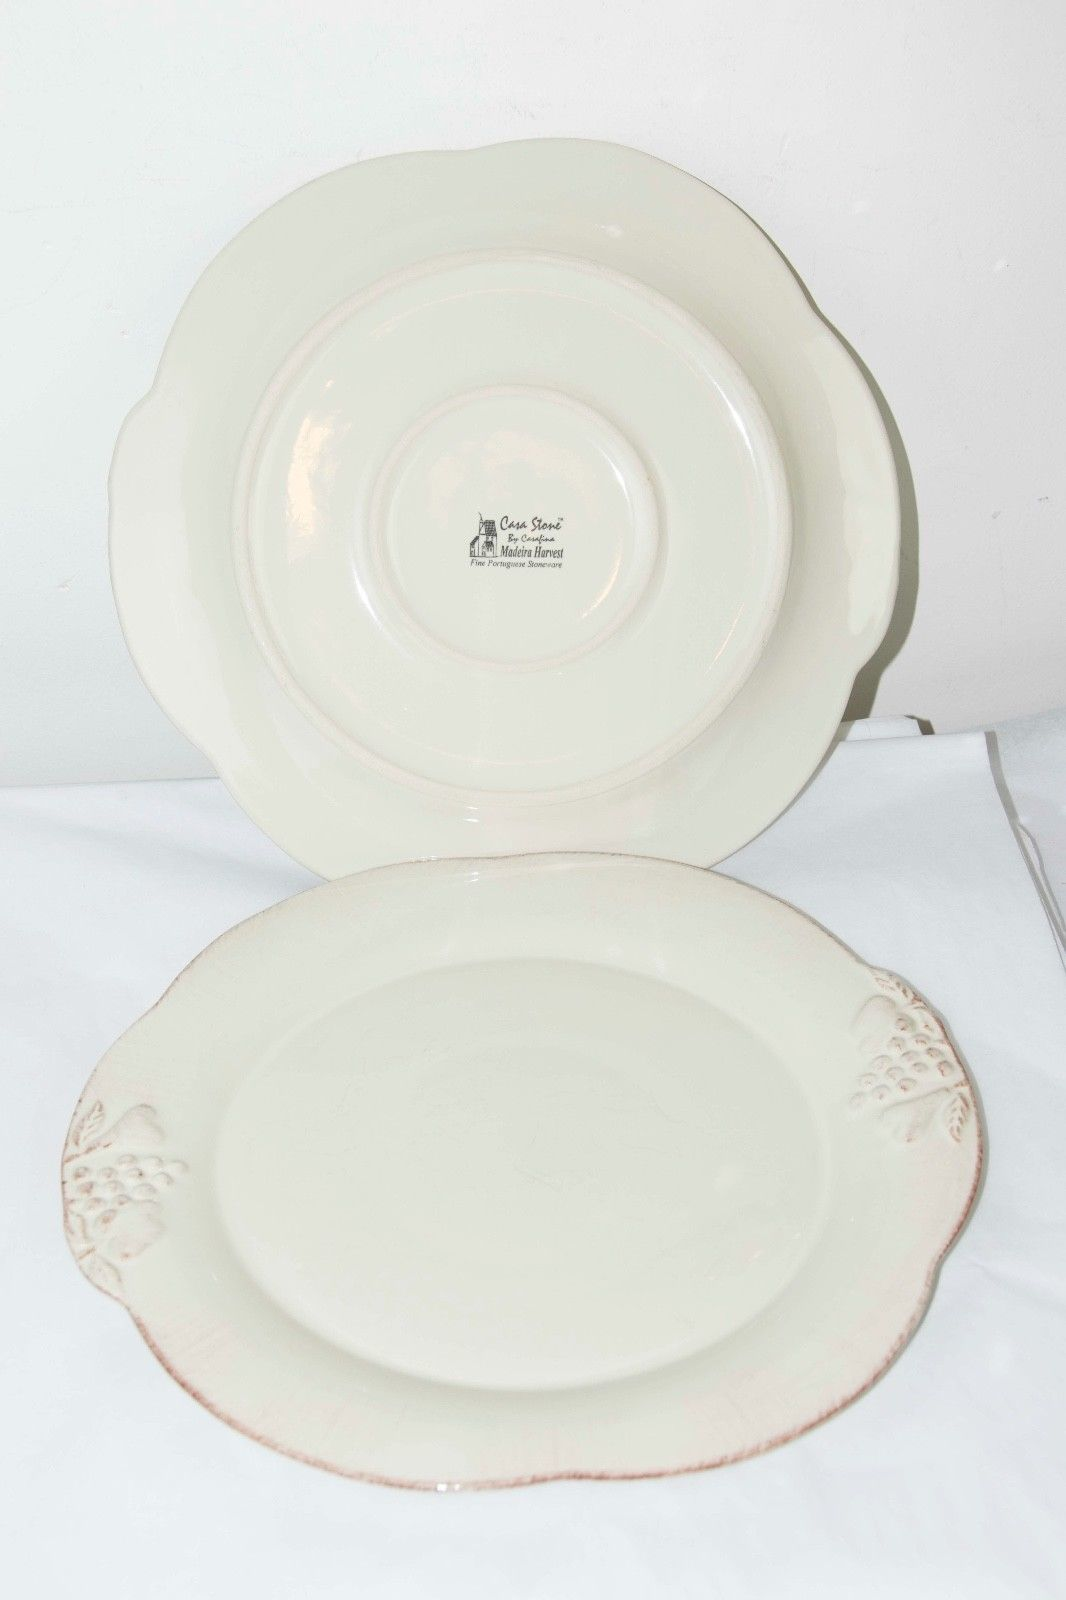 Casa Stone By Casafina casa stone by casafina dinner plate maderia and 50 similar items